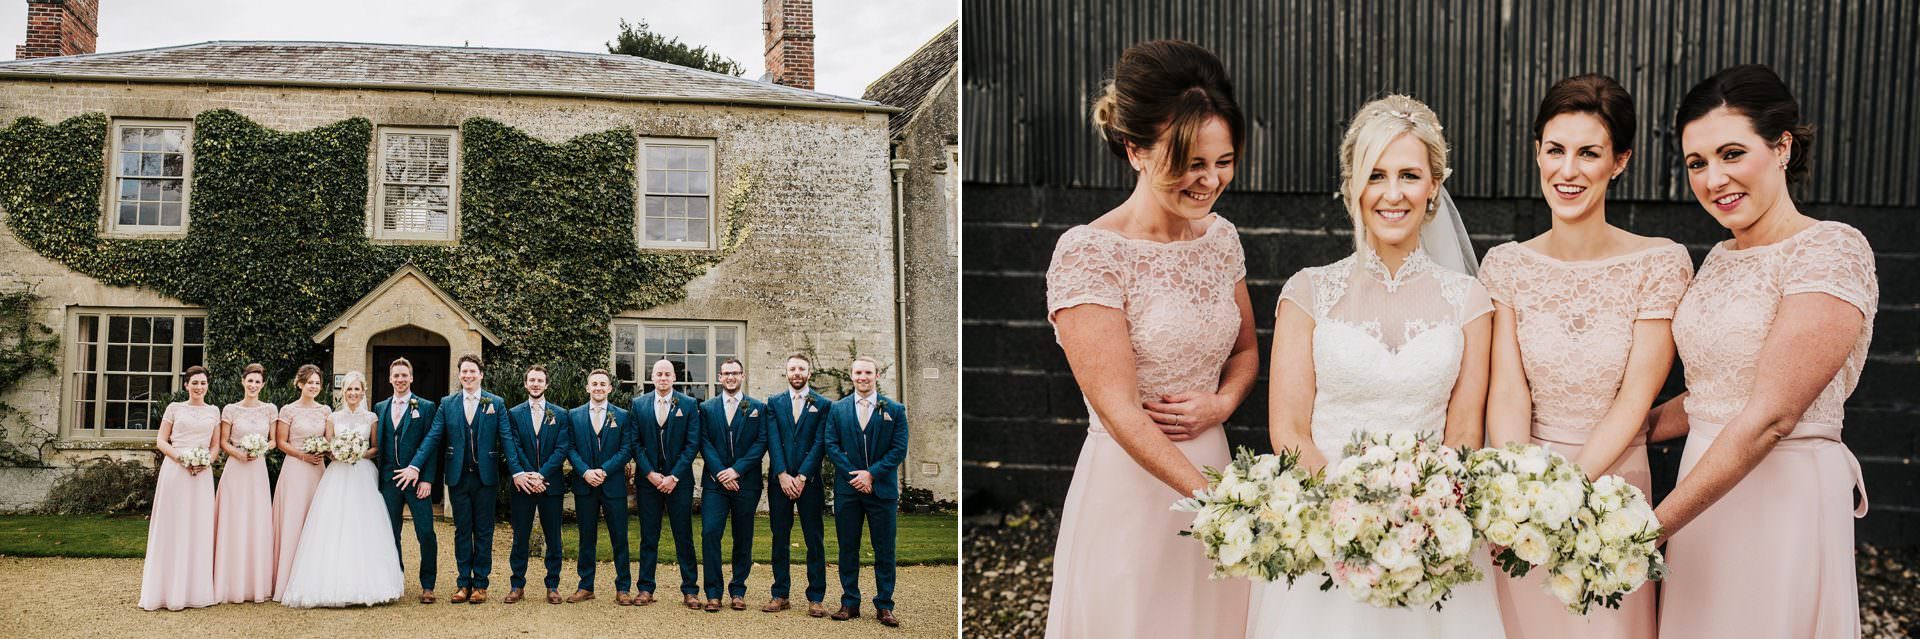 Caswell House Wedding Photographer - Jessica & Chris 28